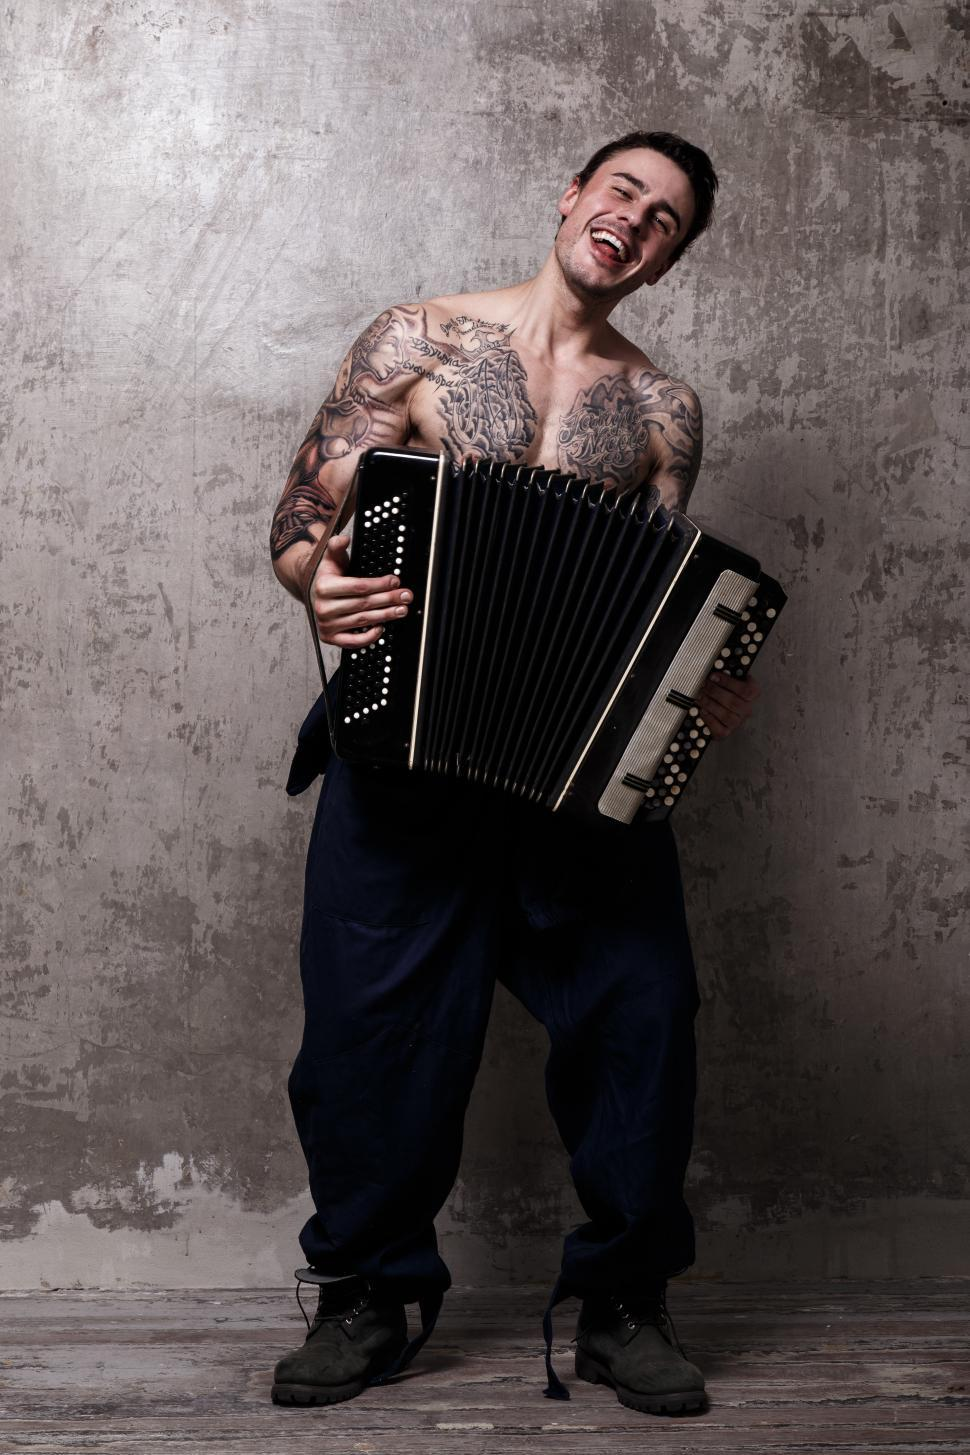 Download Free Stock Photo of Tattooed shirtless musician with accordion